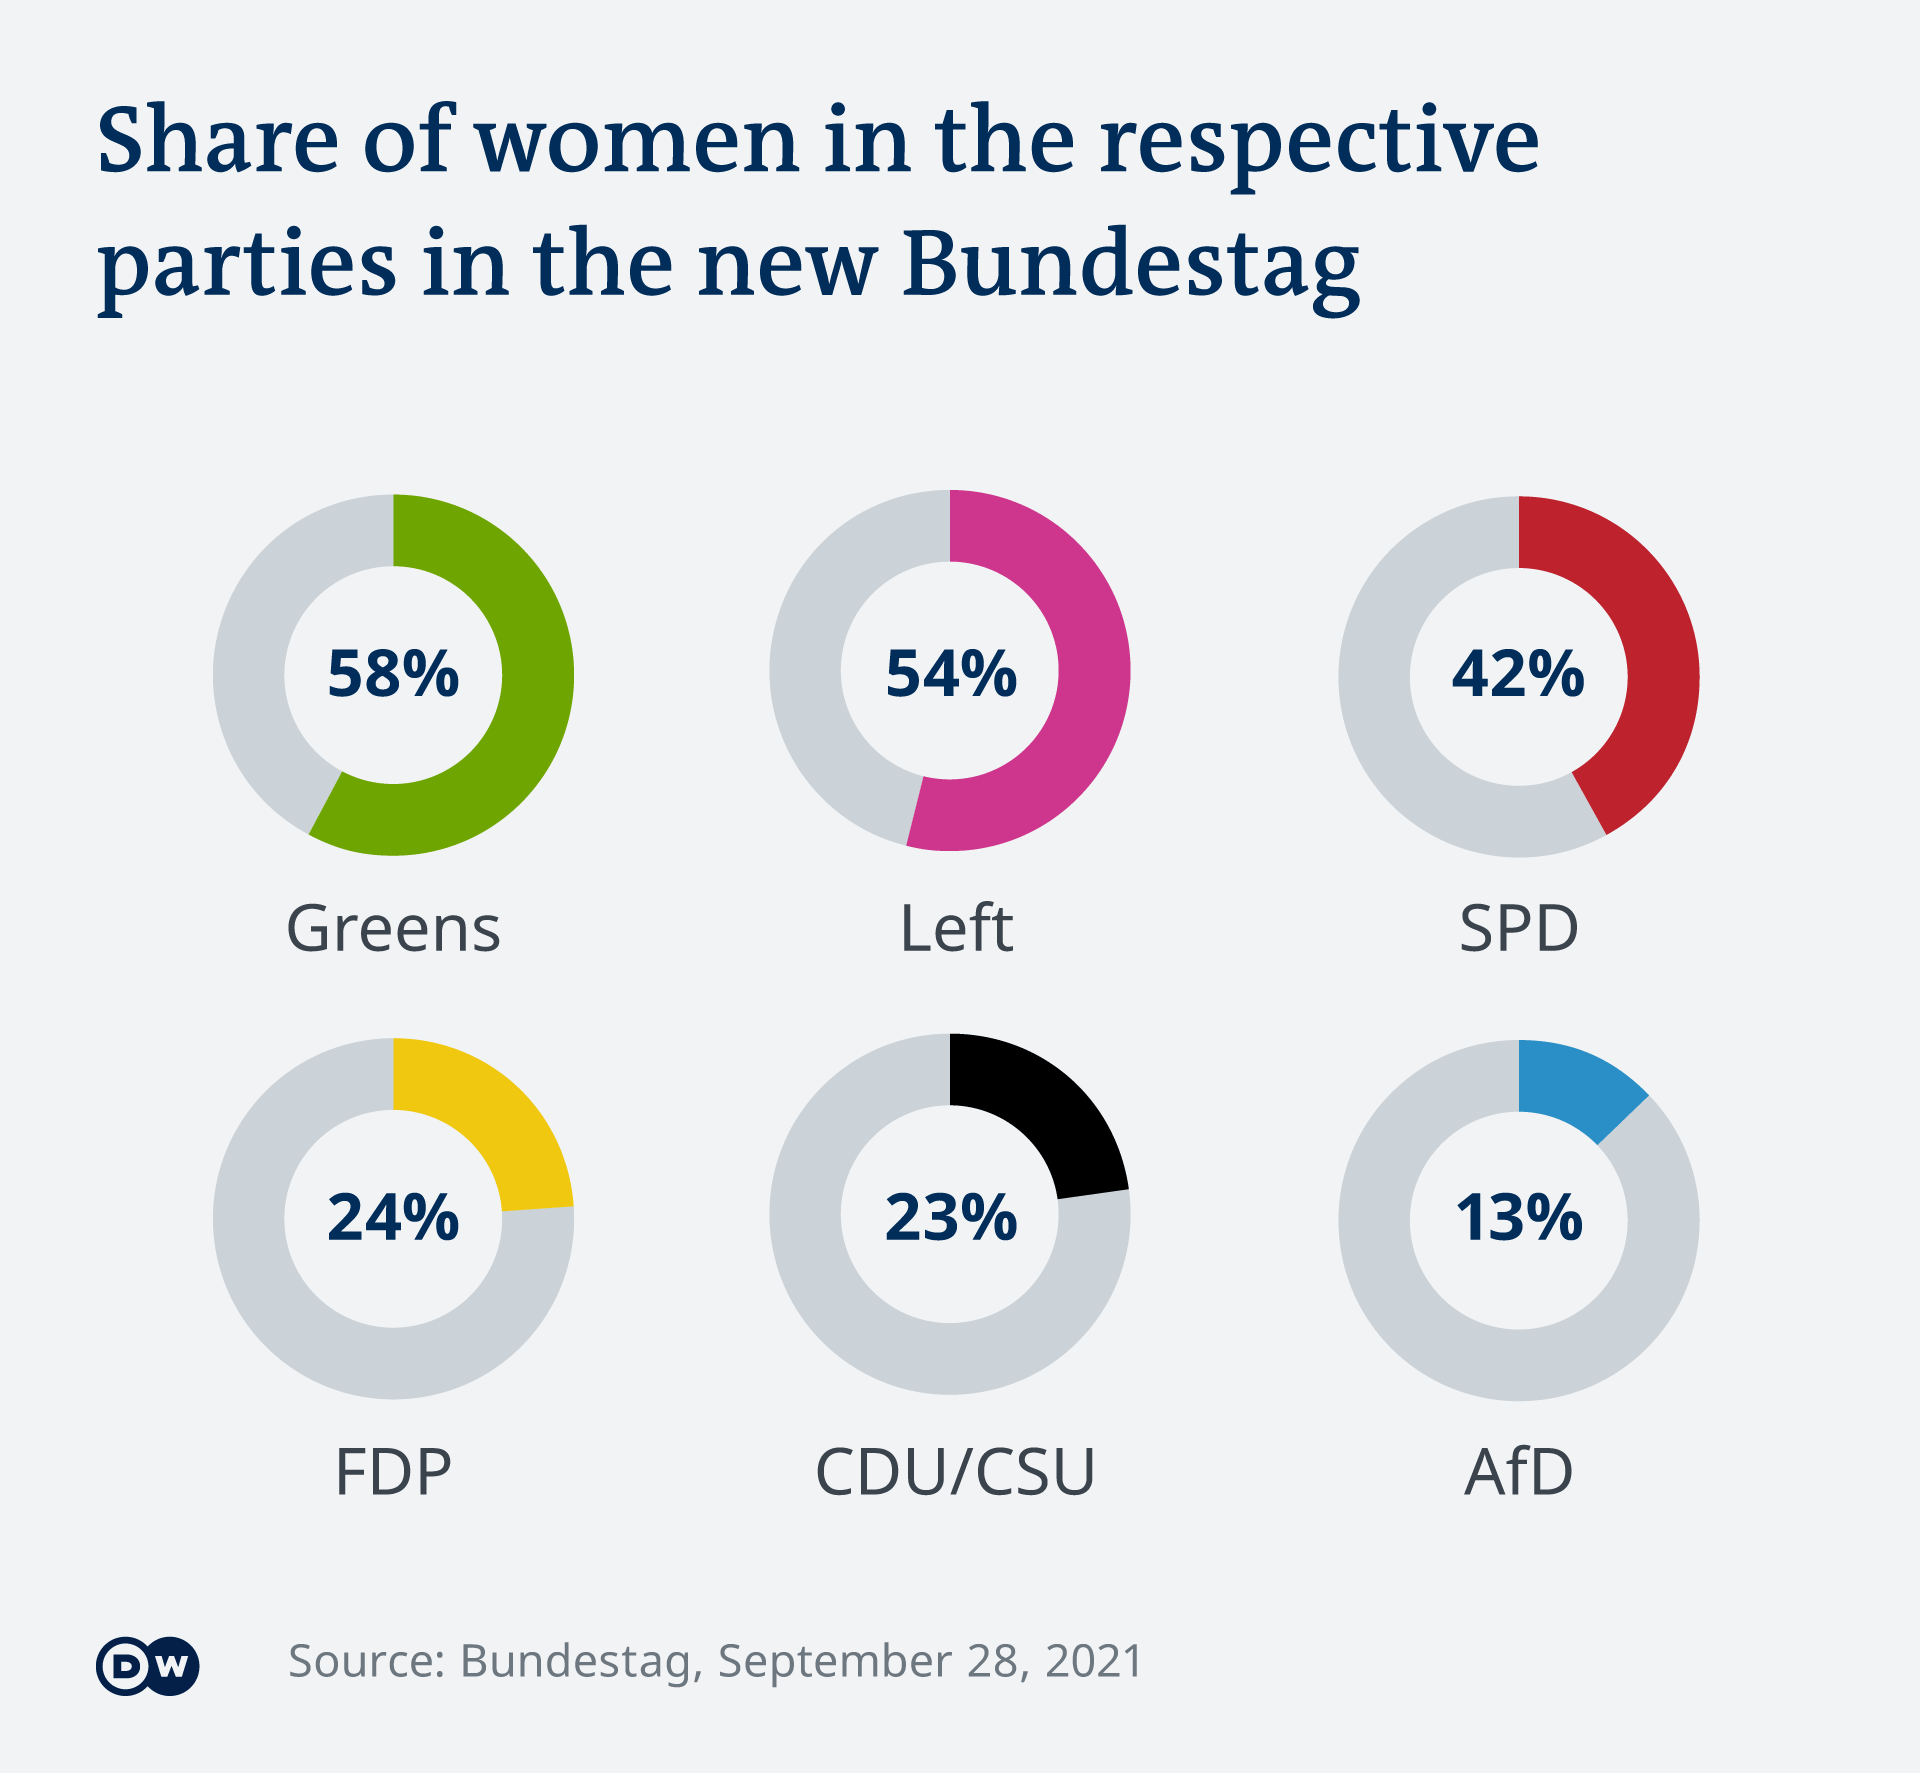 Visualization showing the percentage of women in each party.